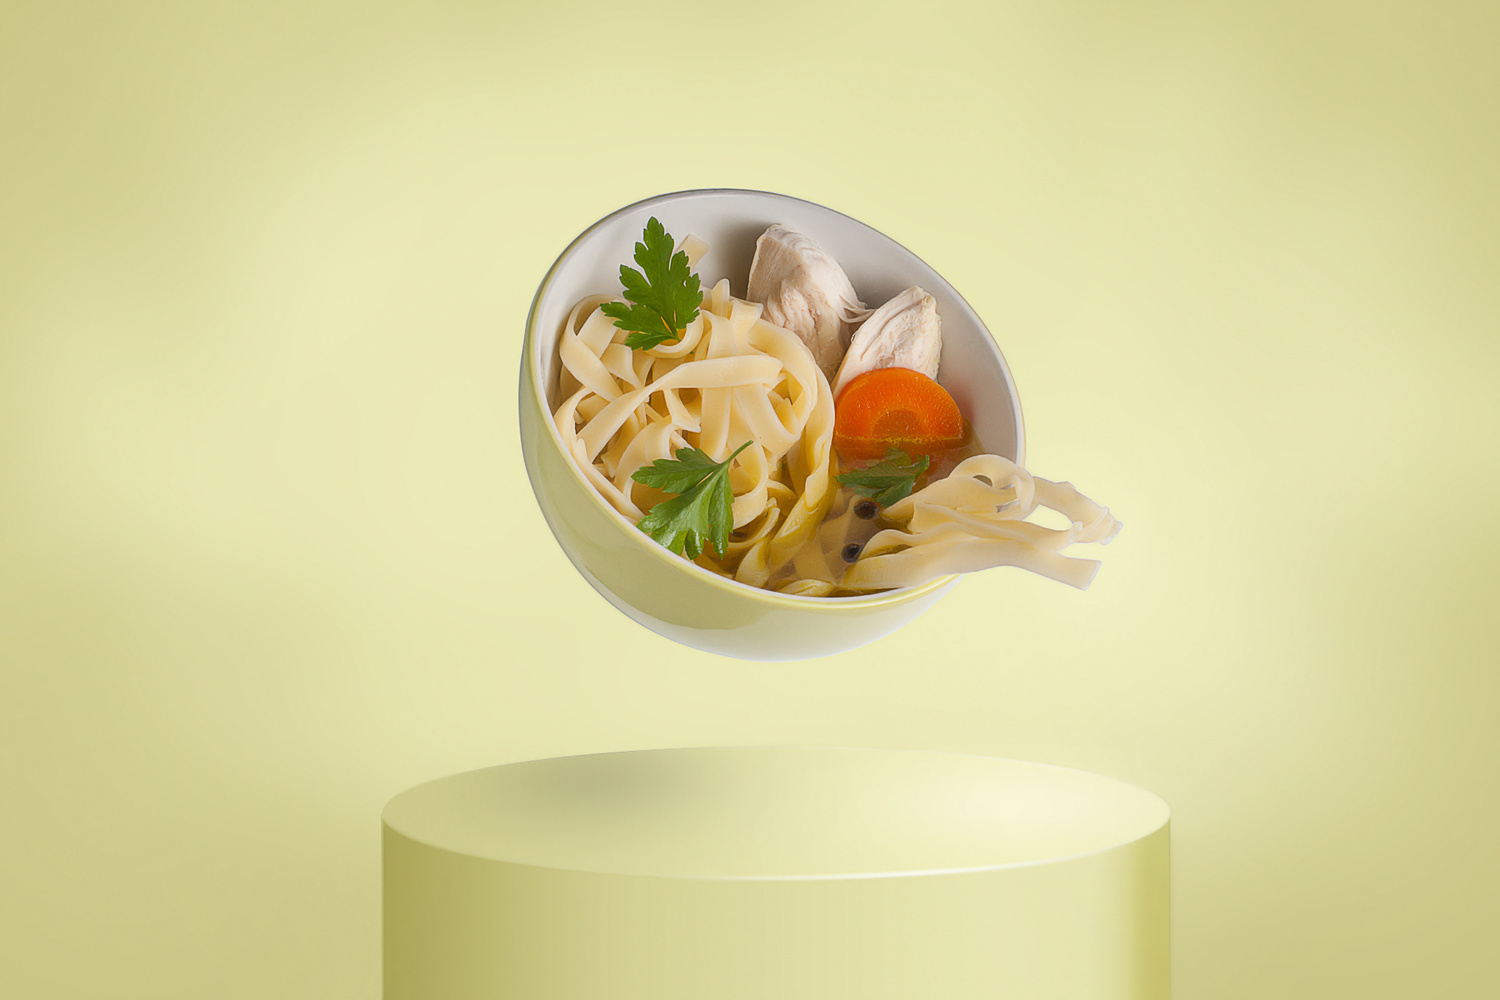 The chicken soup. by Janusz Slyk